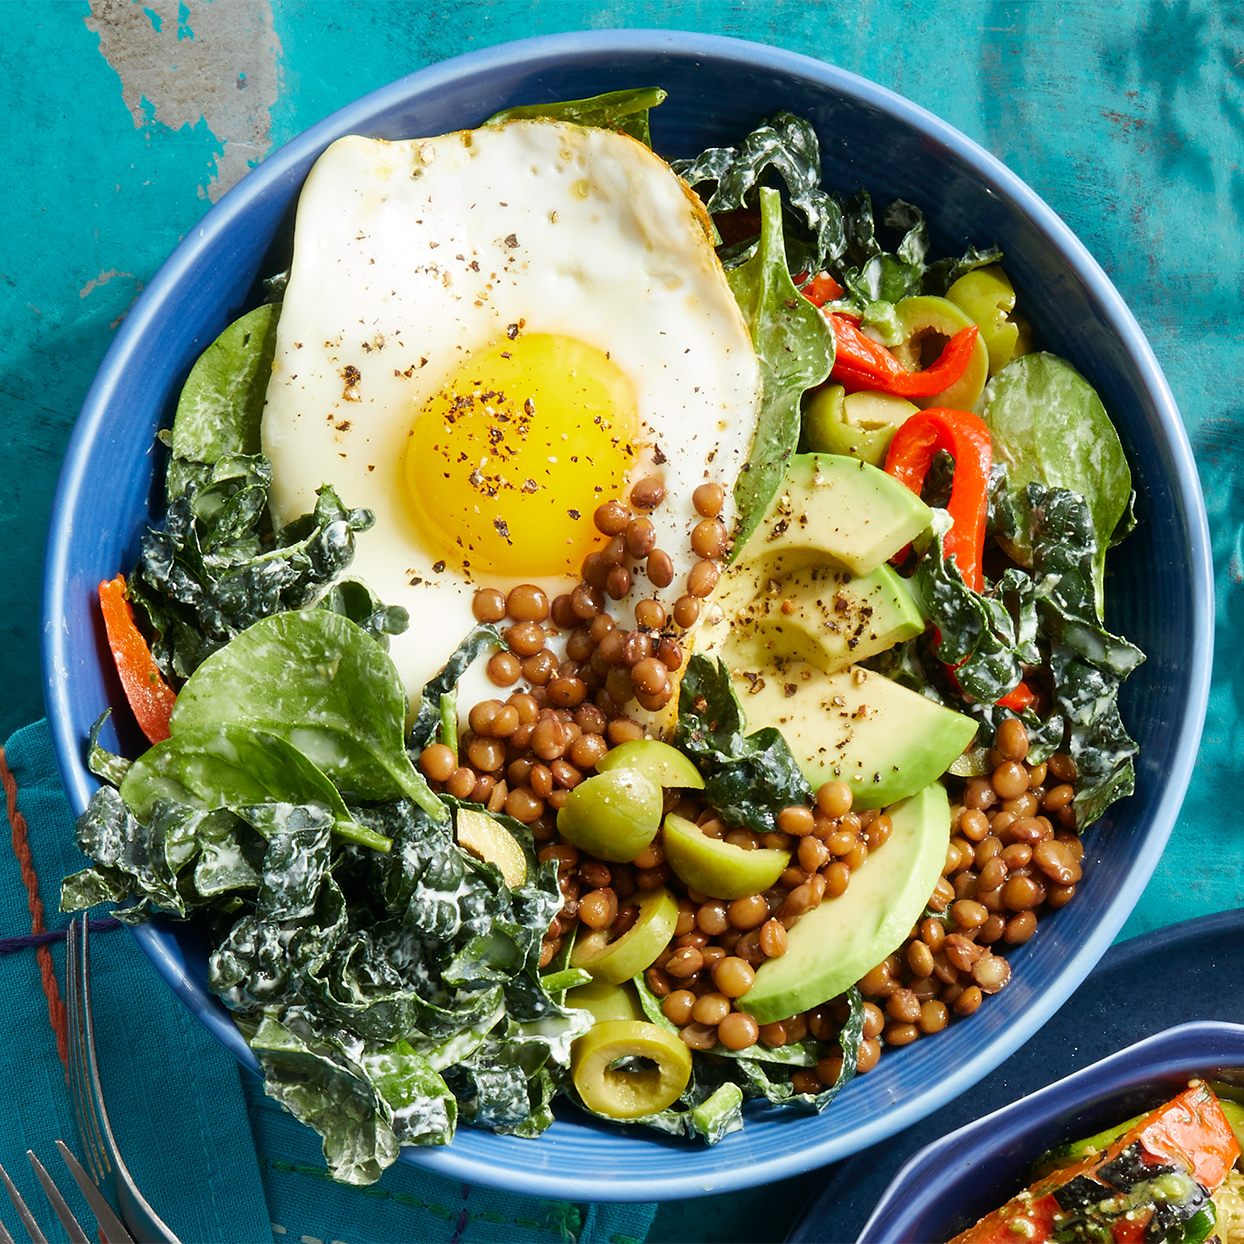 Lentil Bowls with Fried Eggs & Greens